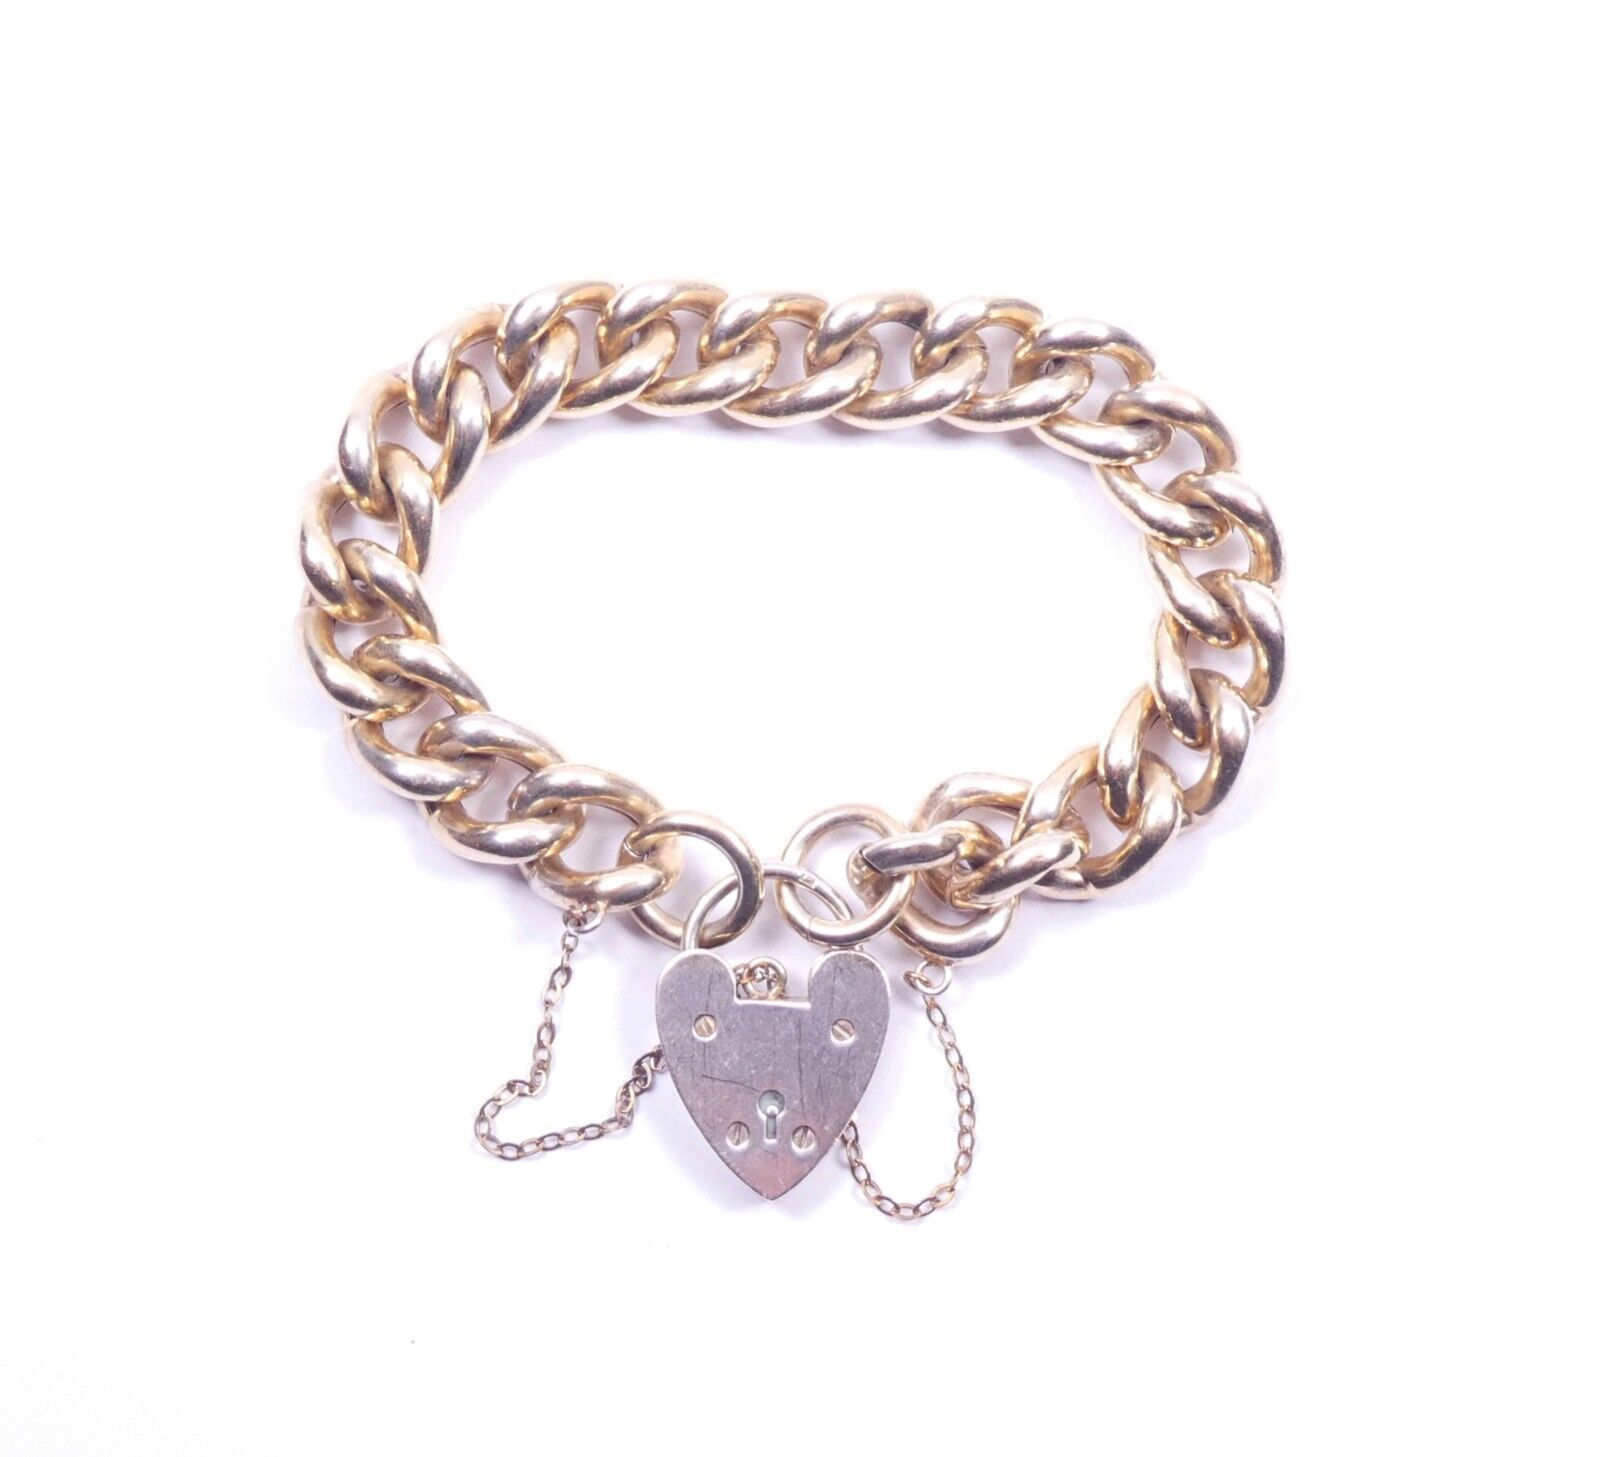 VINTAGE Bracciale con Charm a a a trama grossa Hollow LINK 925 argentoo Sterling 1961 HM 26.3g 7f1381